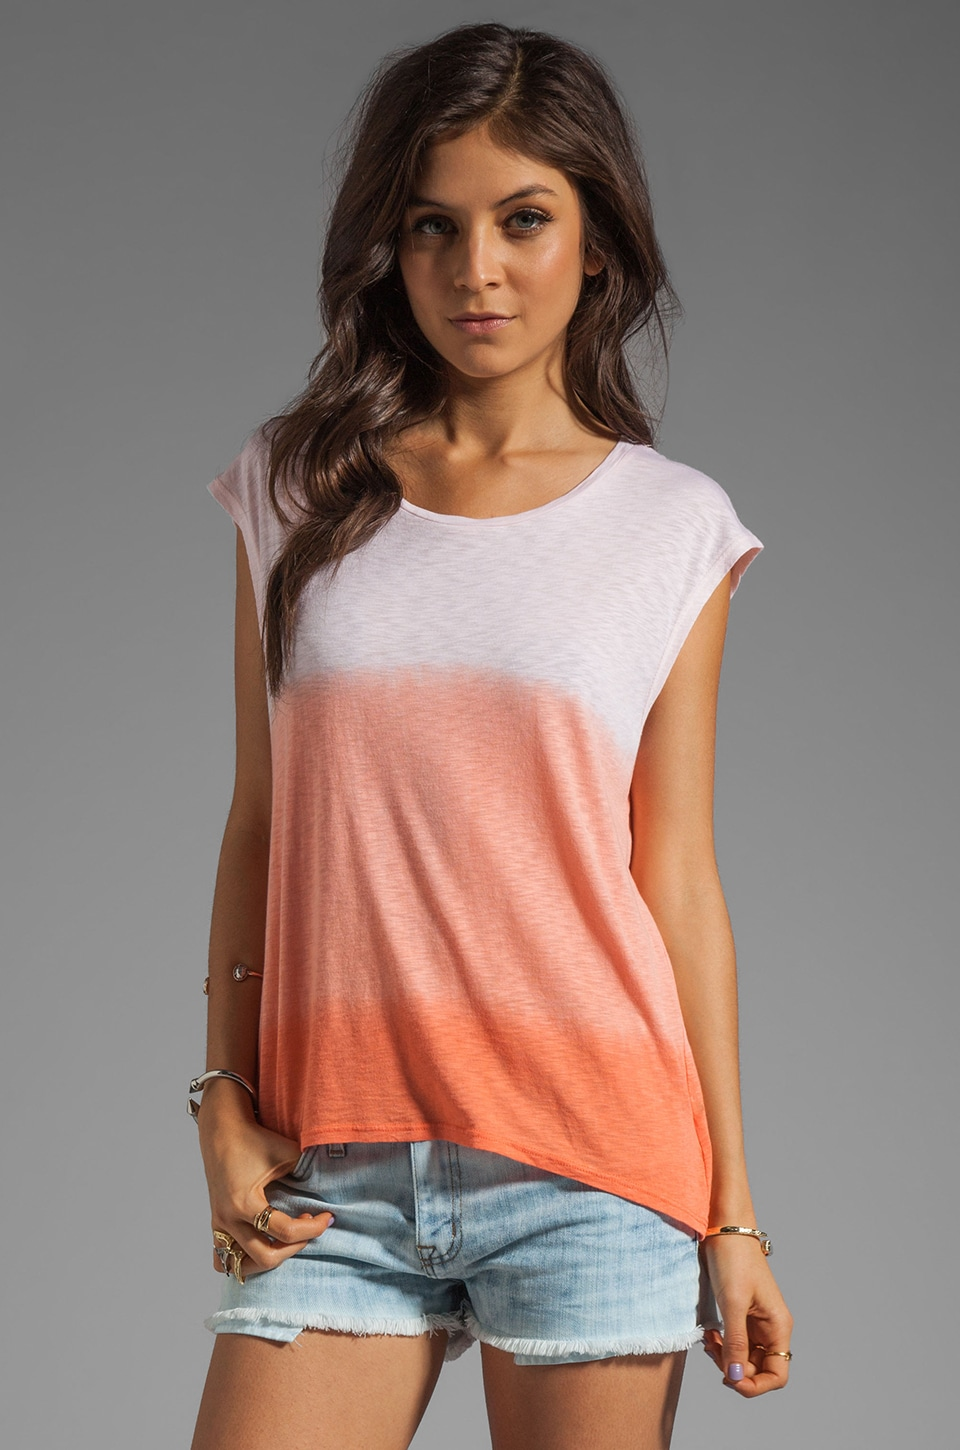 LA Made Ombre Slub Jersey Dolman Top in Grapefruit Coral